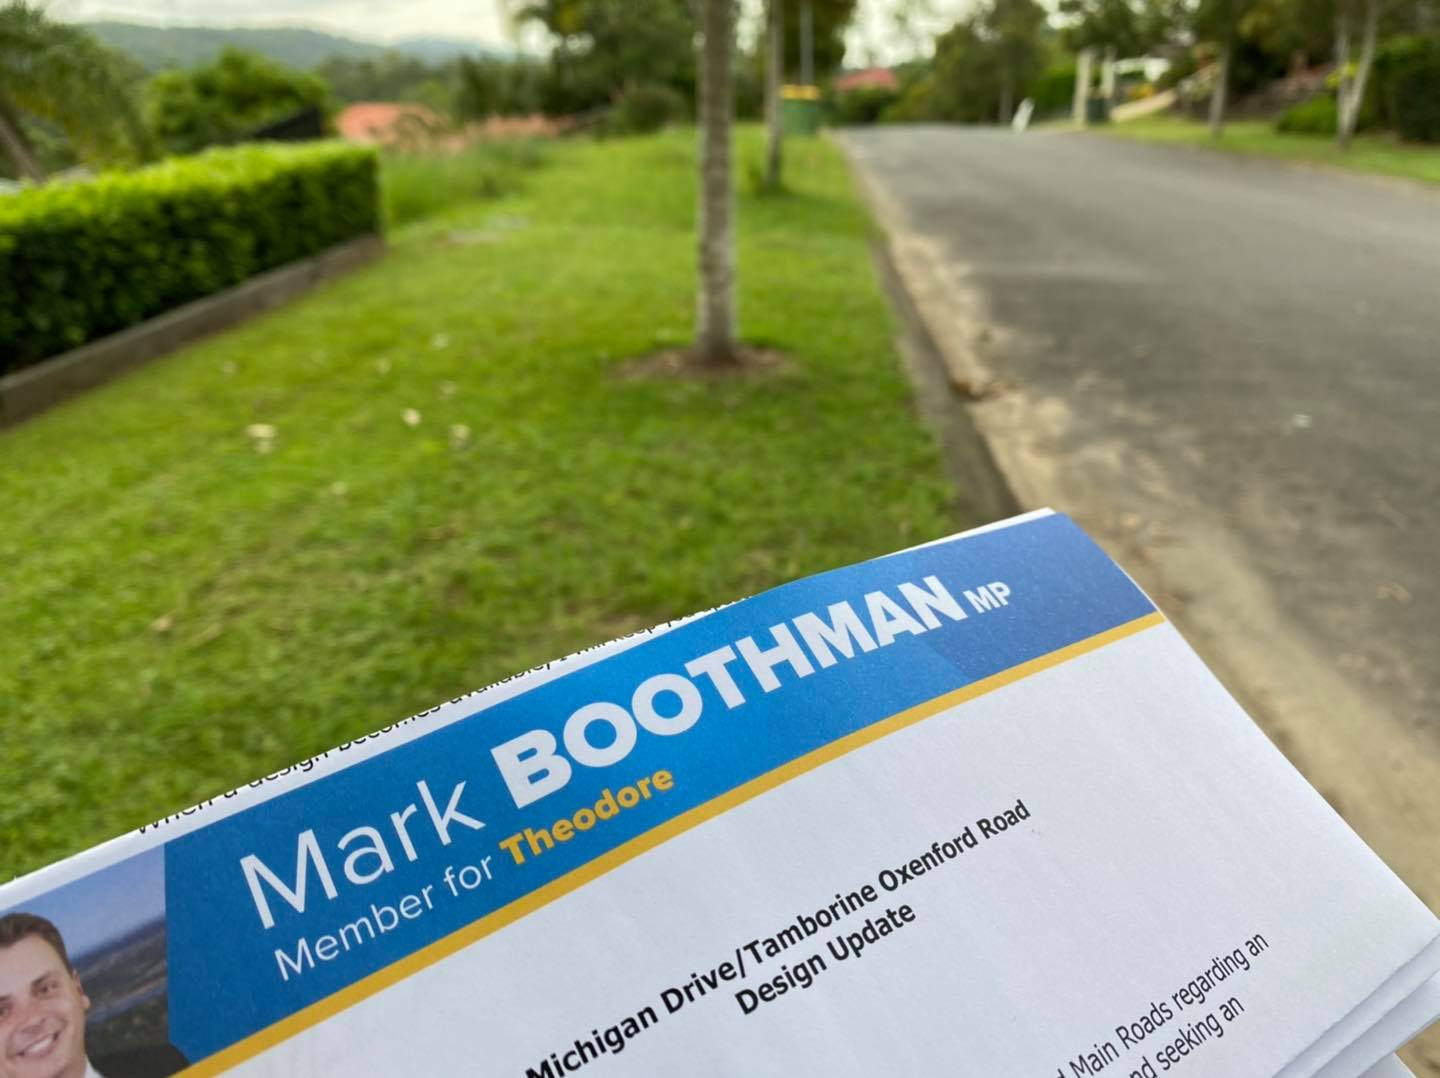 Out and About the Electorate